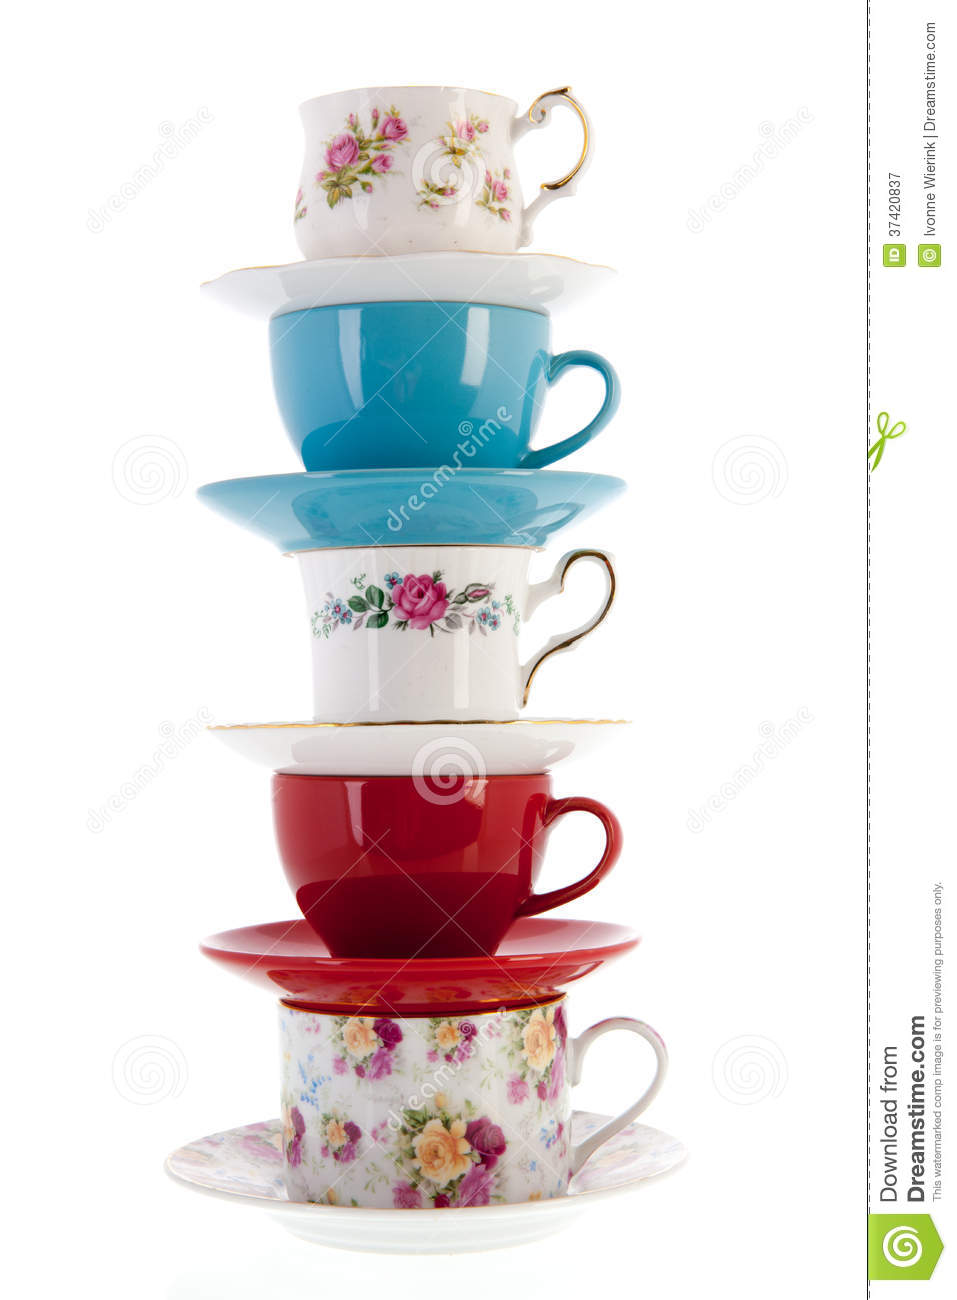 Stack Vintage Coffee Or Tea Cups Royalty Free Stock  : stack vintage coffee tea cups stacked isolated over white background 37420837 from dreamstime.com size 957 x 1300 jpeg 84kB